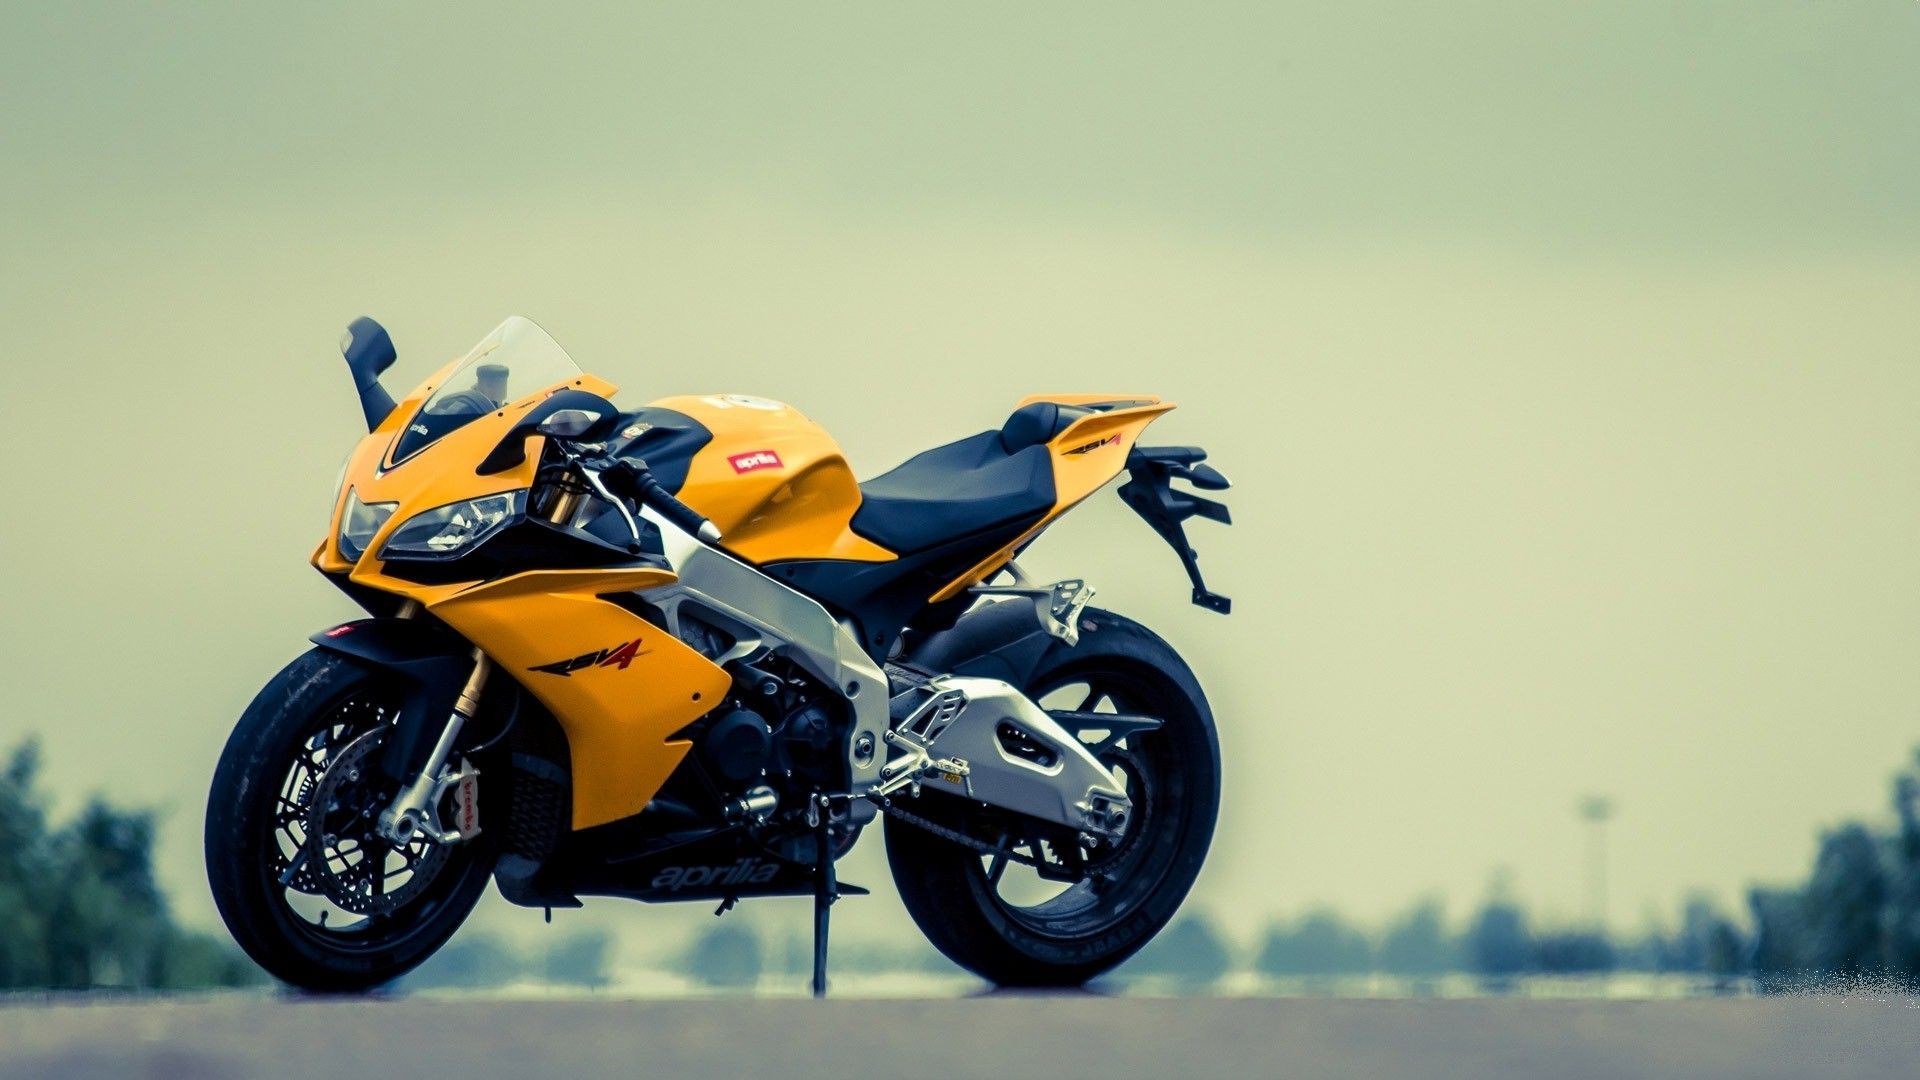 Best Aprilia Yellow Bike Hd Photo Hd Wallpapers Motorcycle